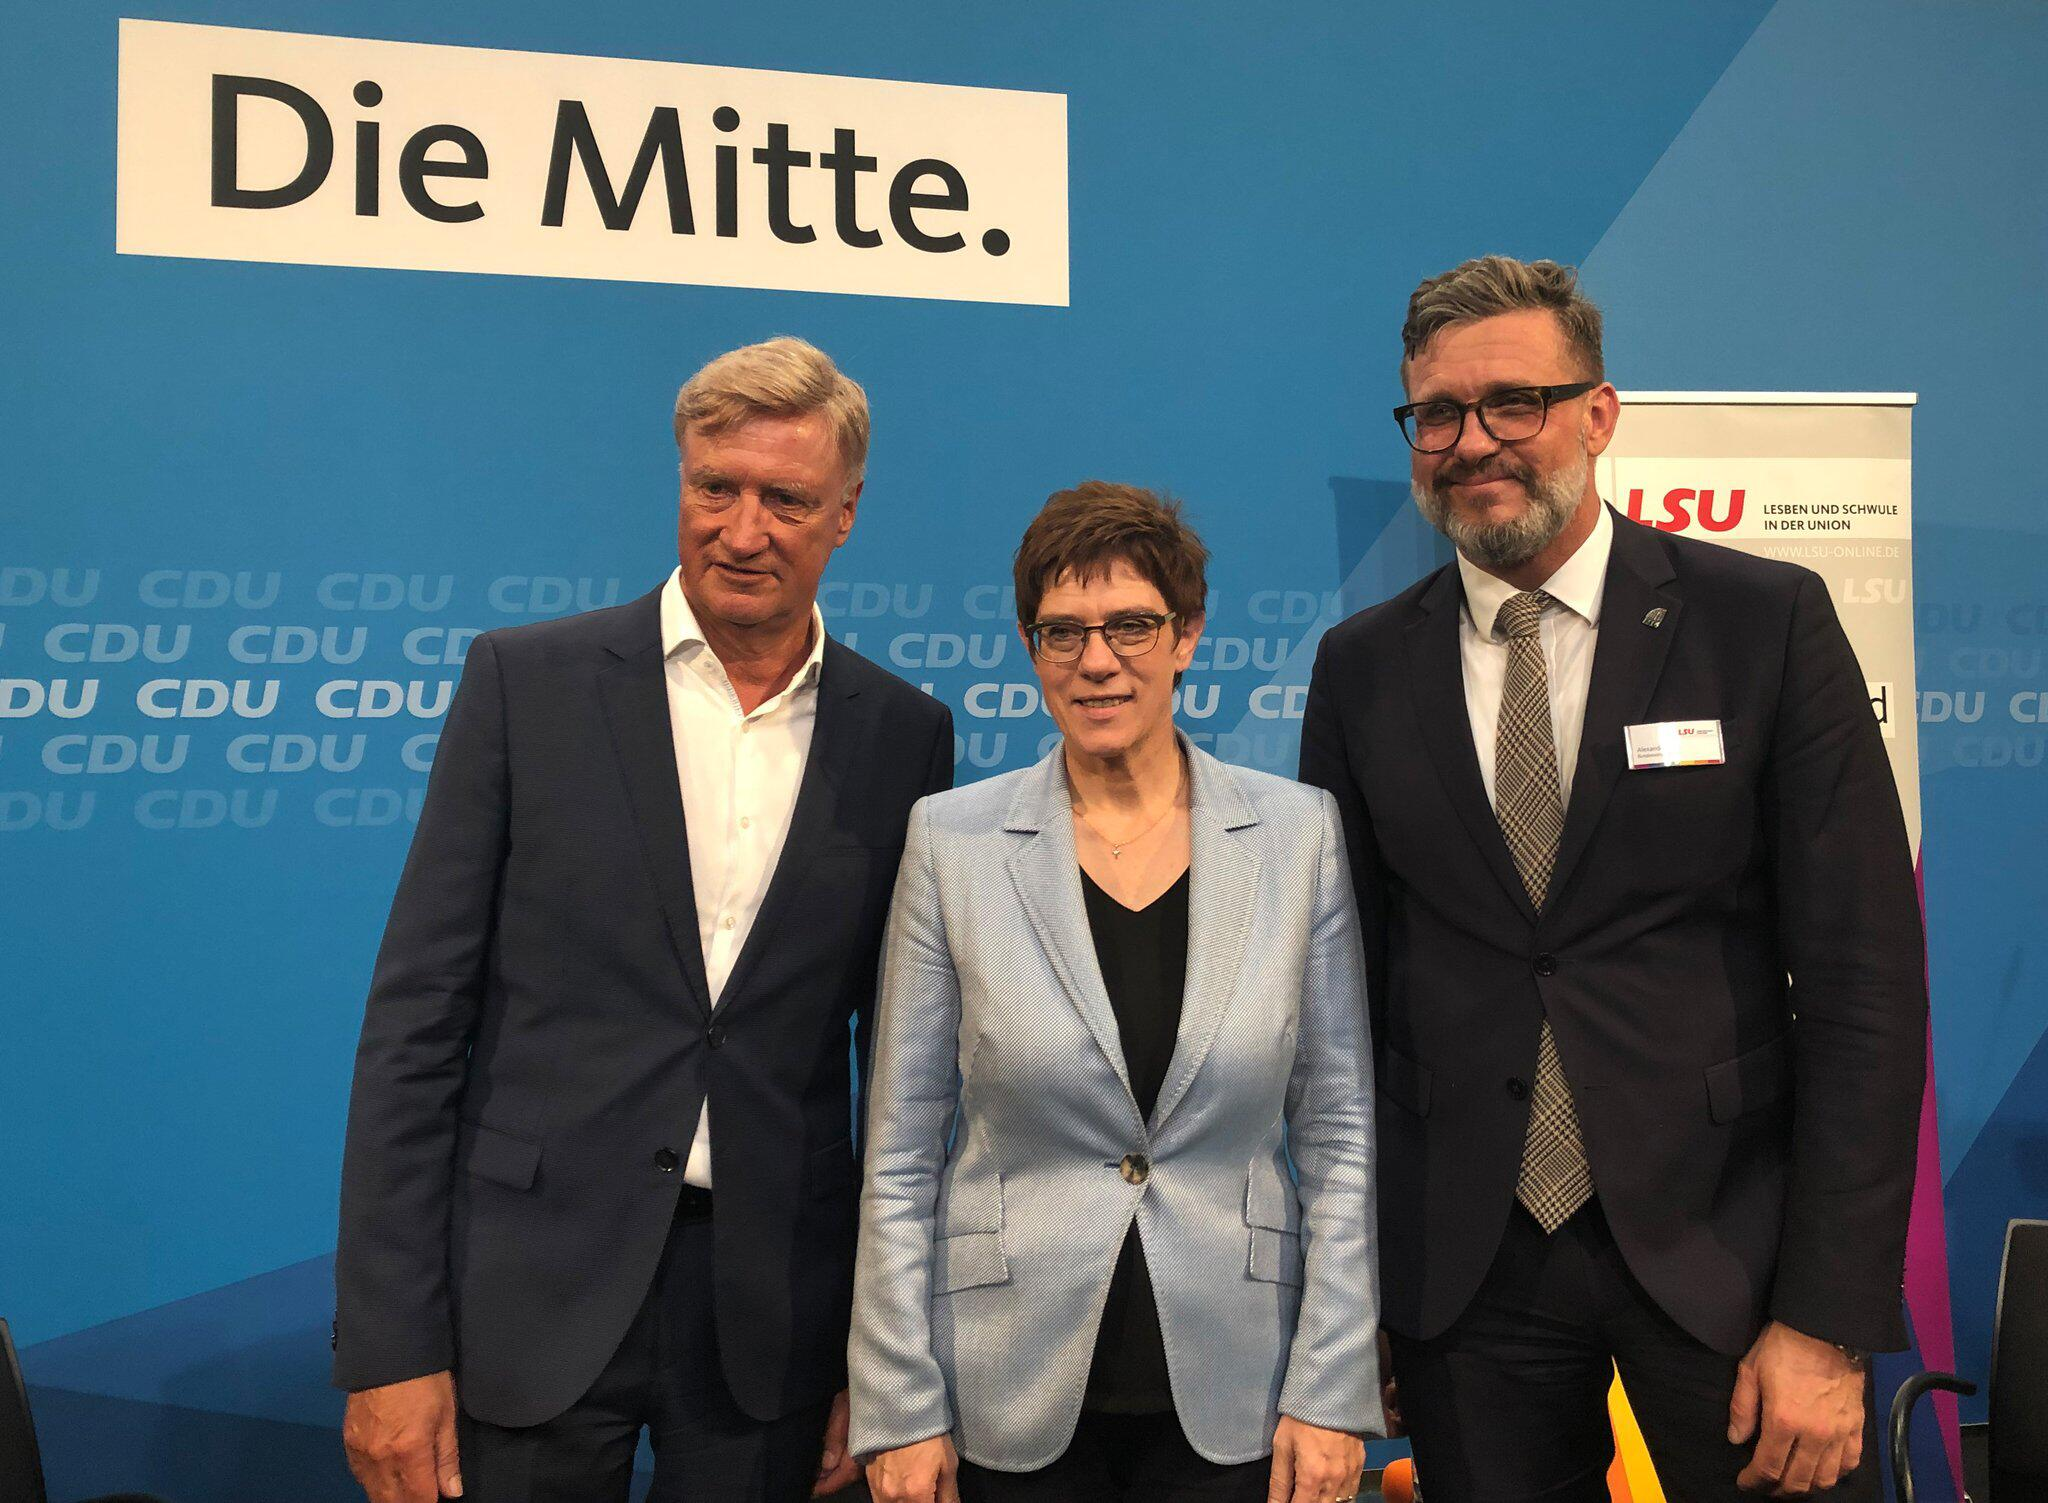 Bild zu Kramp-Karrenbauer confirms commitment to marriage for all